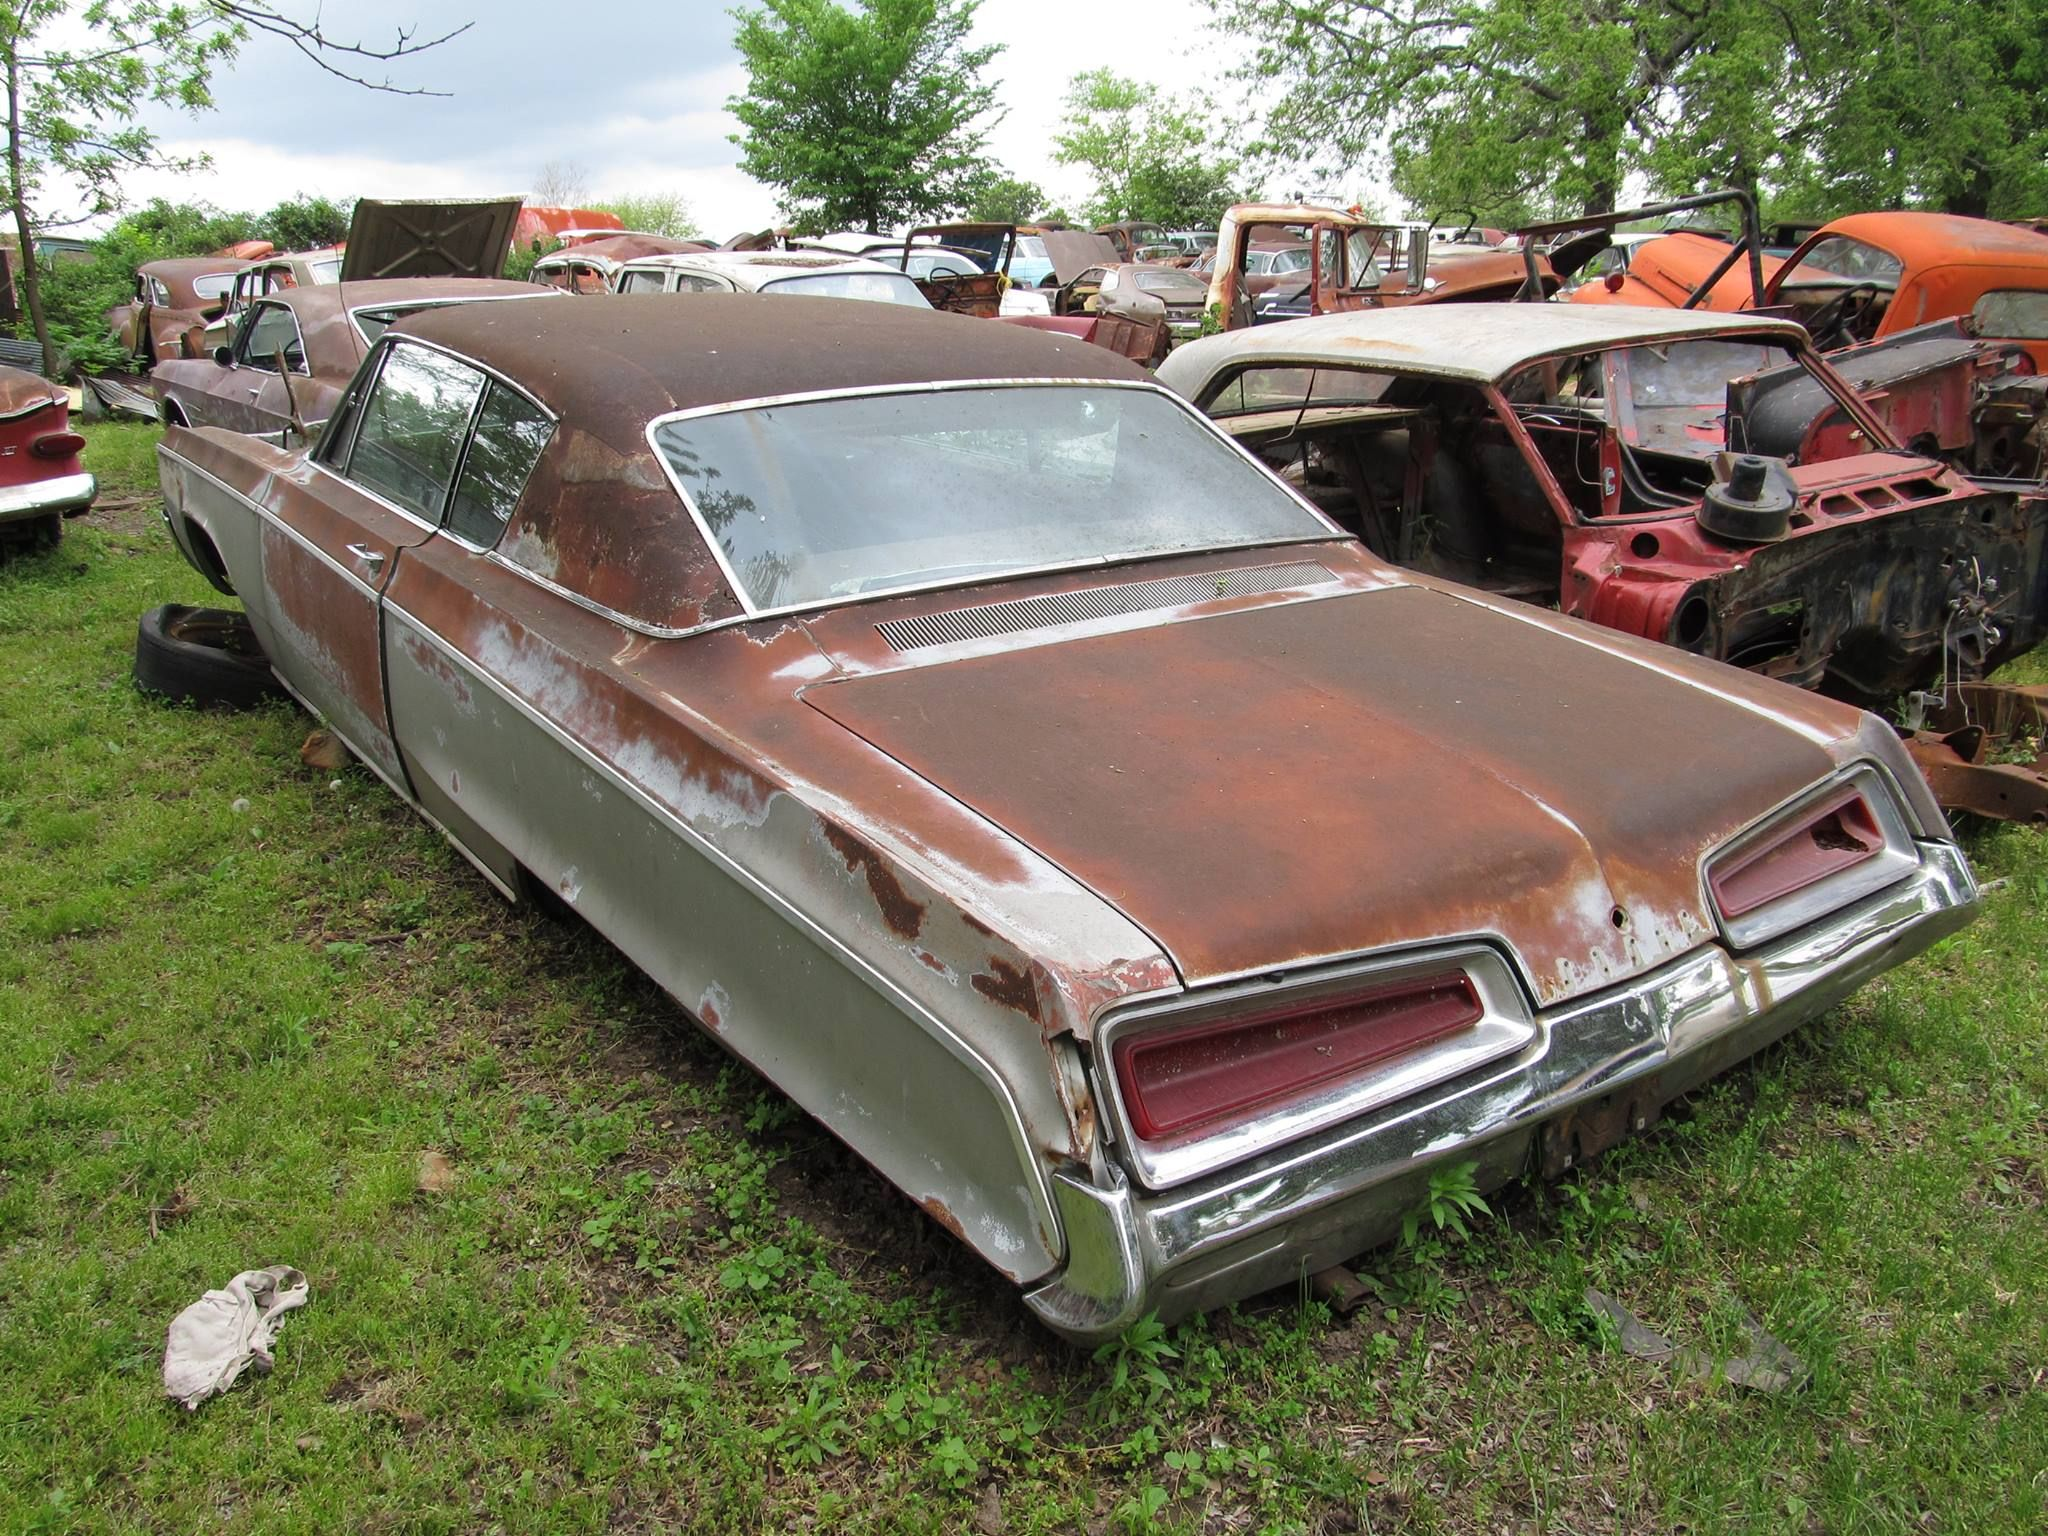 images of british junk yards | Humansville – Scott Salvage Yard ...